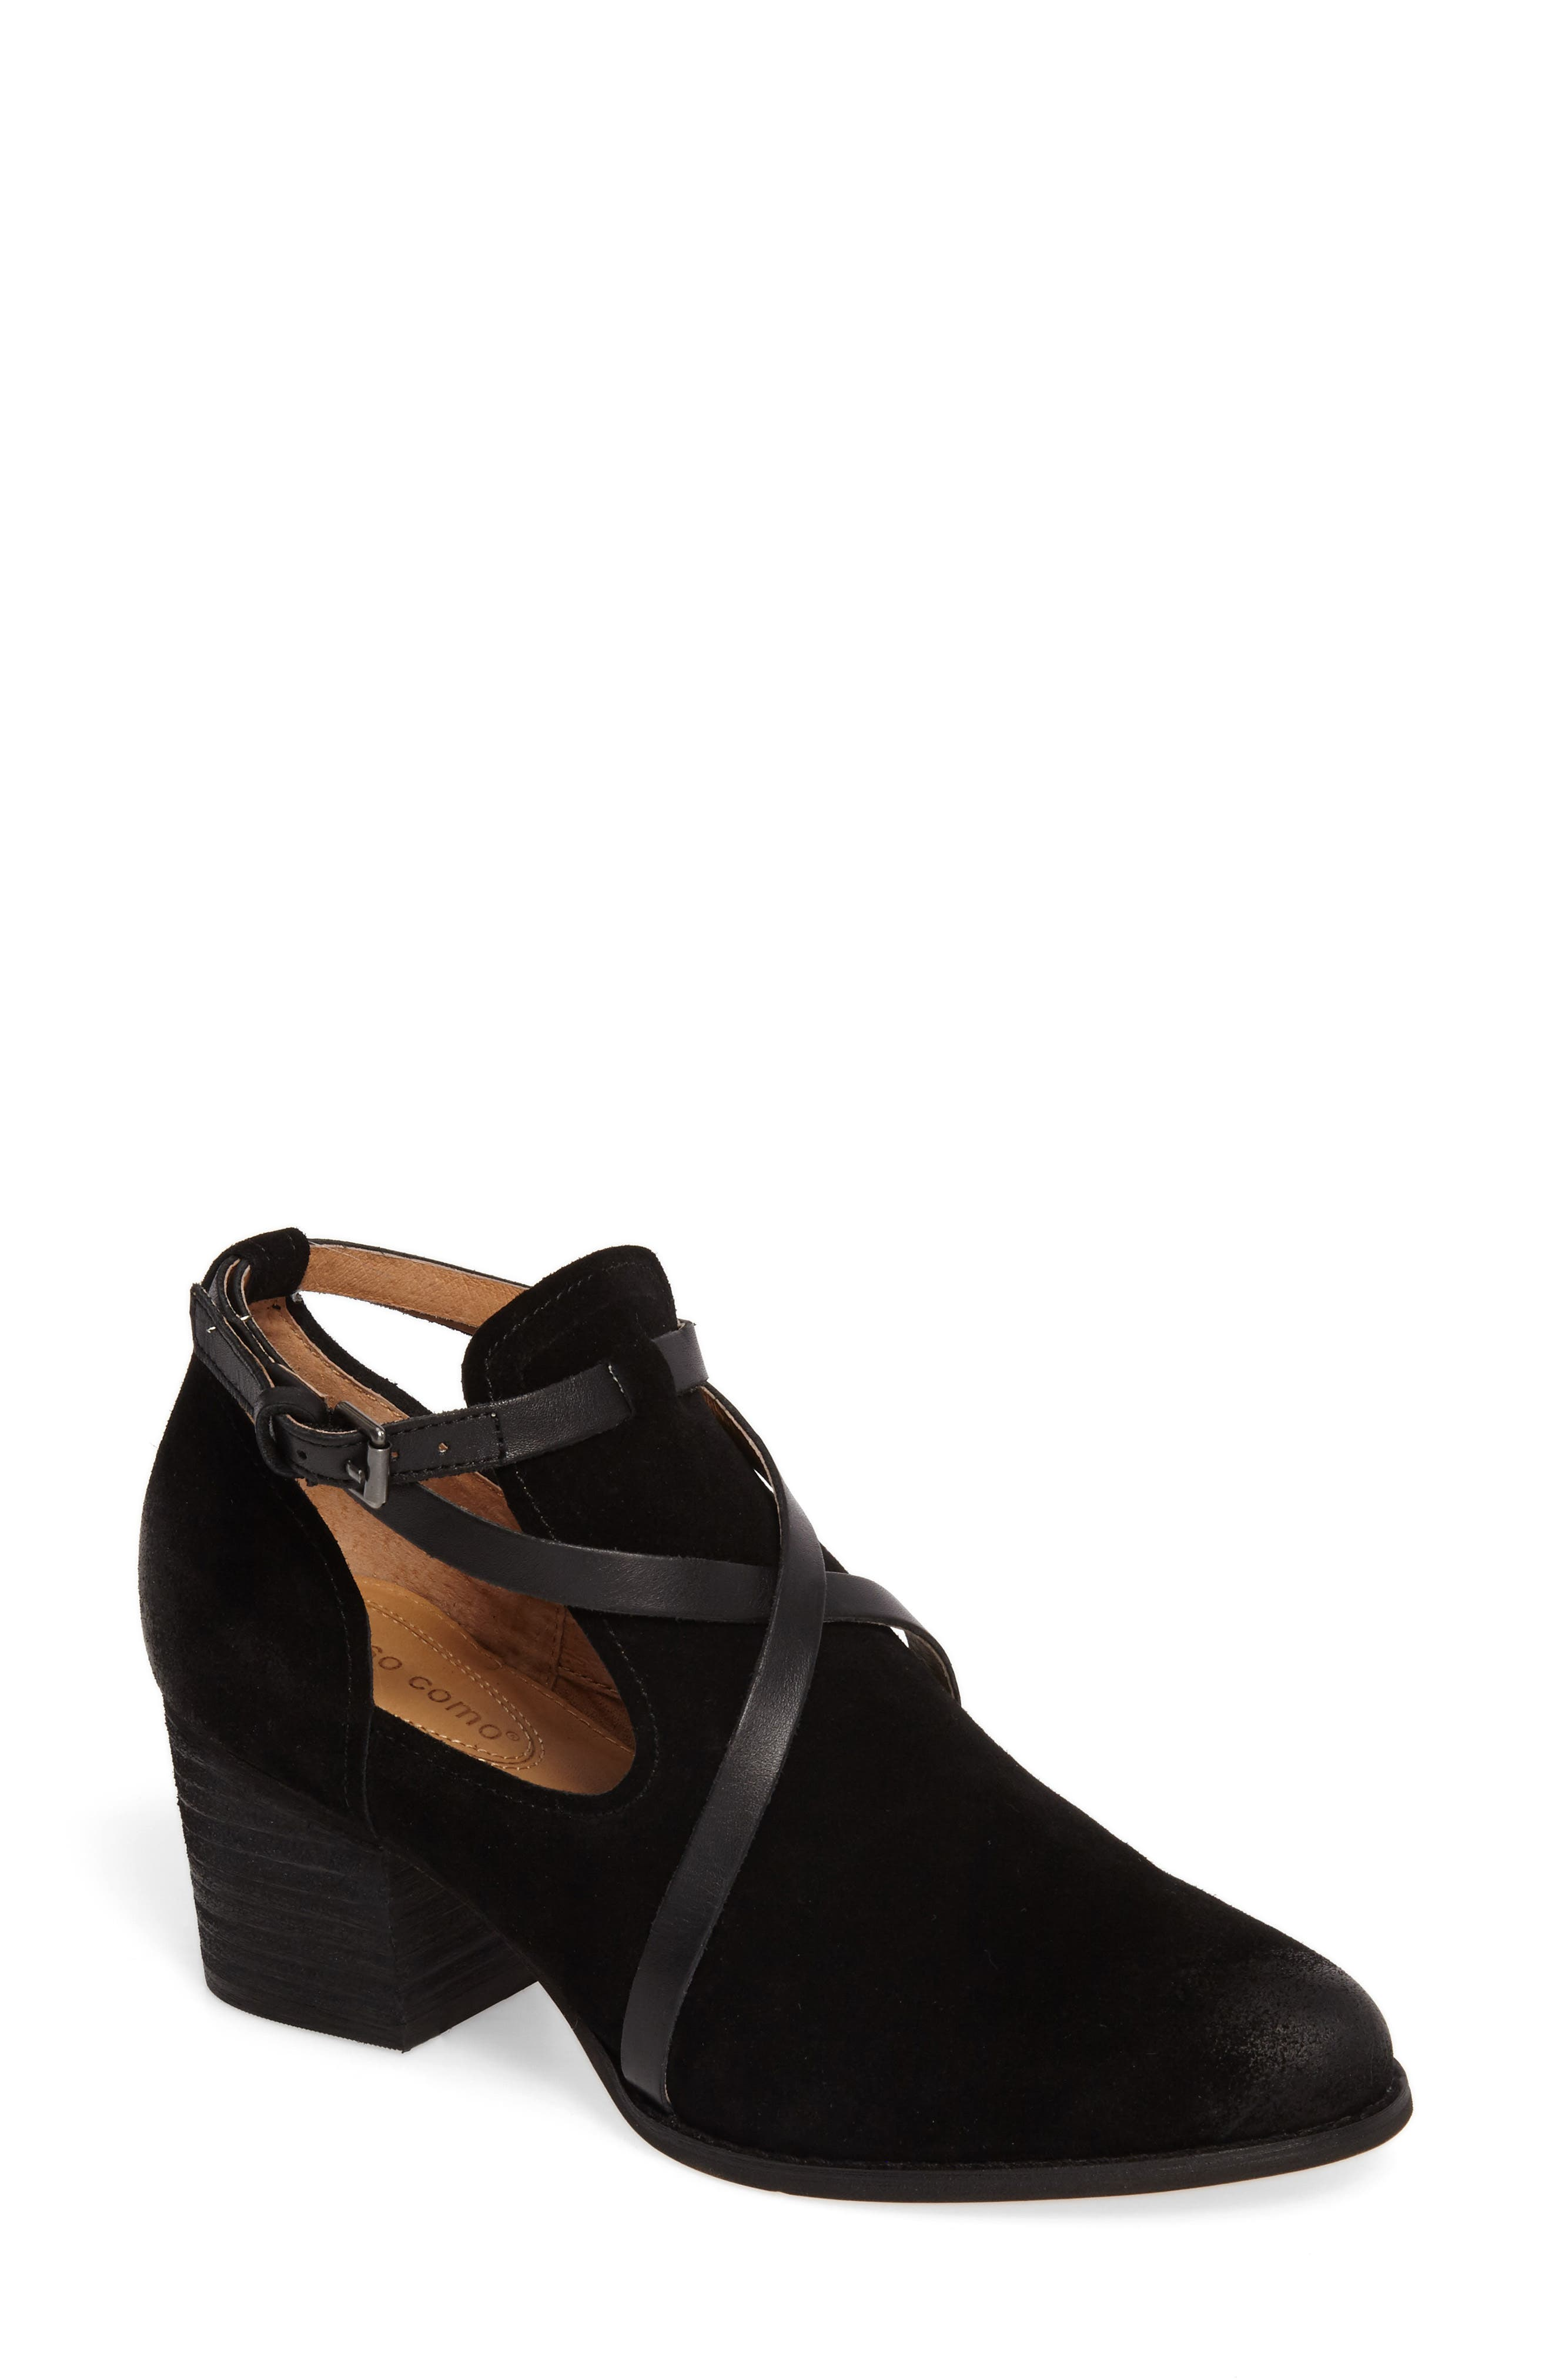 Hanna Bootie,                         Main,                         color, Black Suede